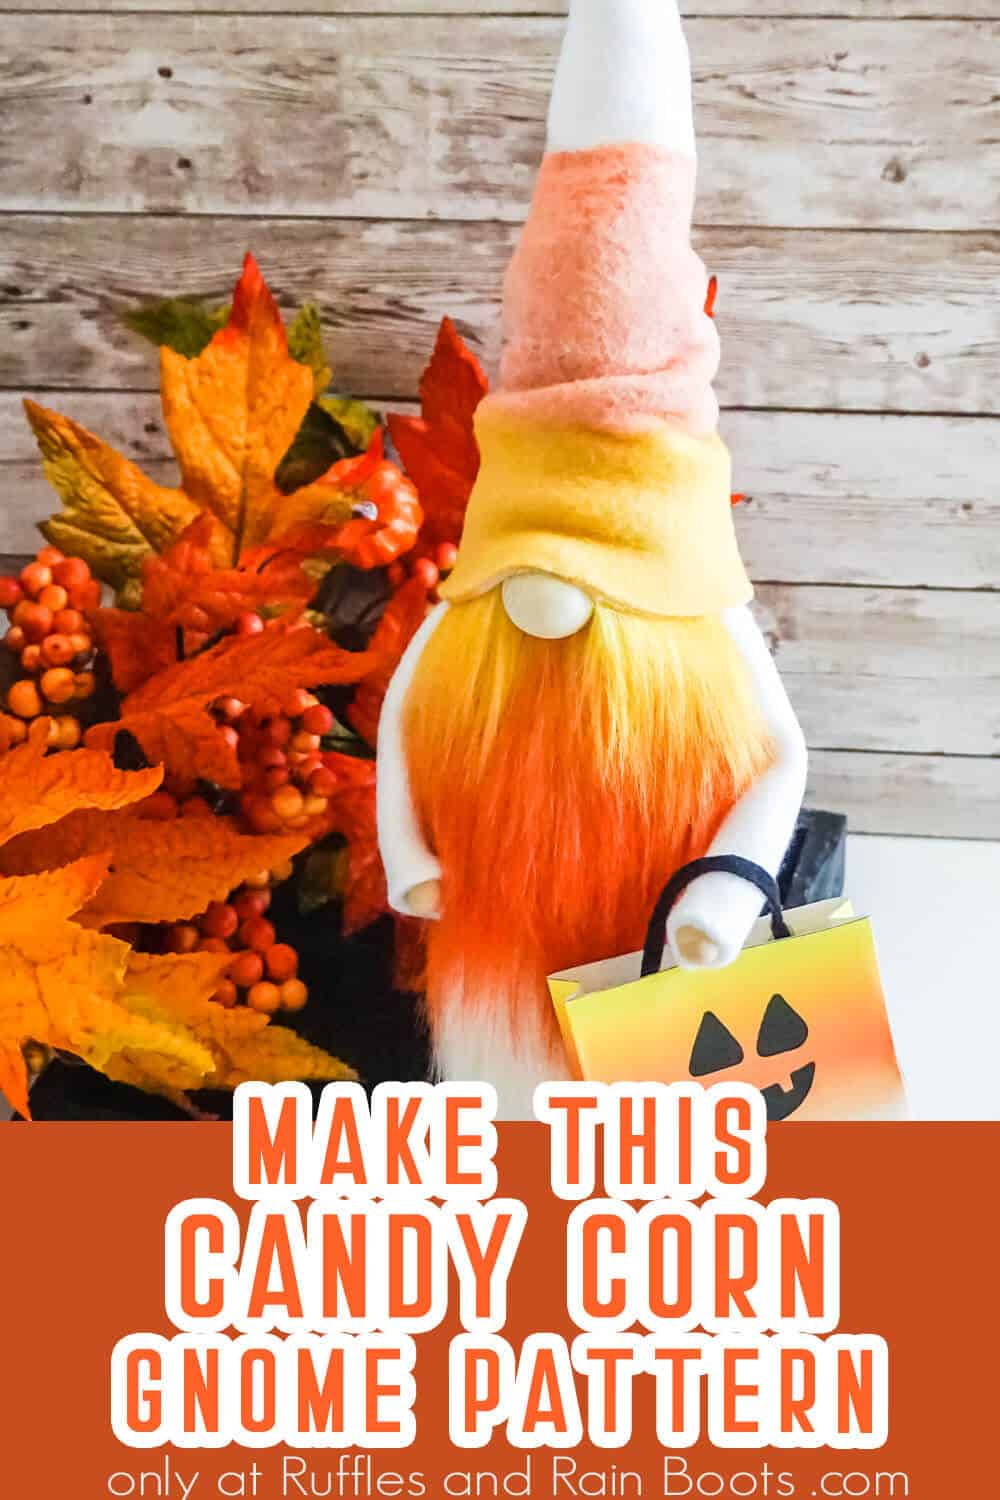 gnome pattern with candy corn beard with text which reads make this candy corn gnome pattern